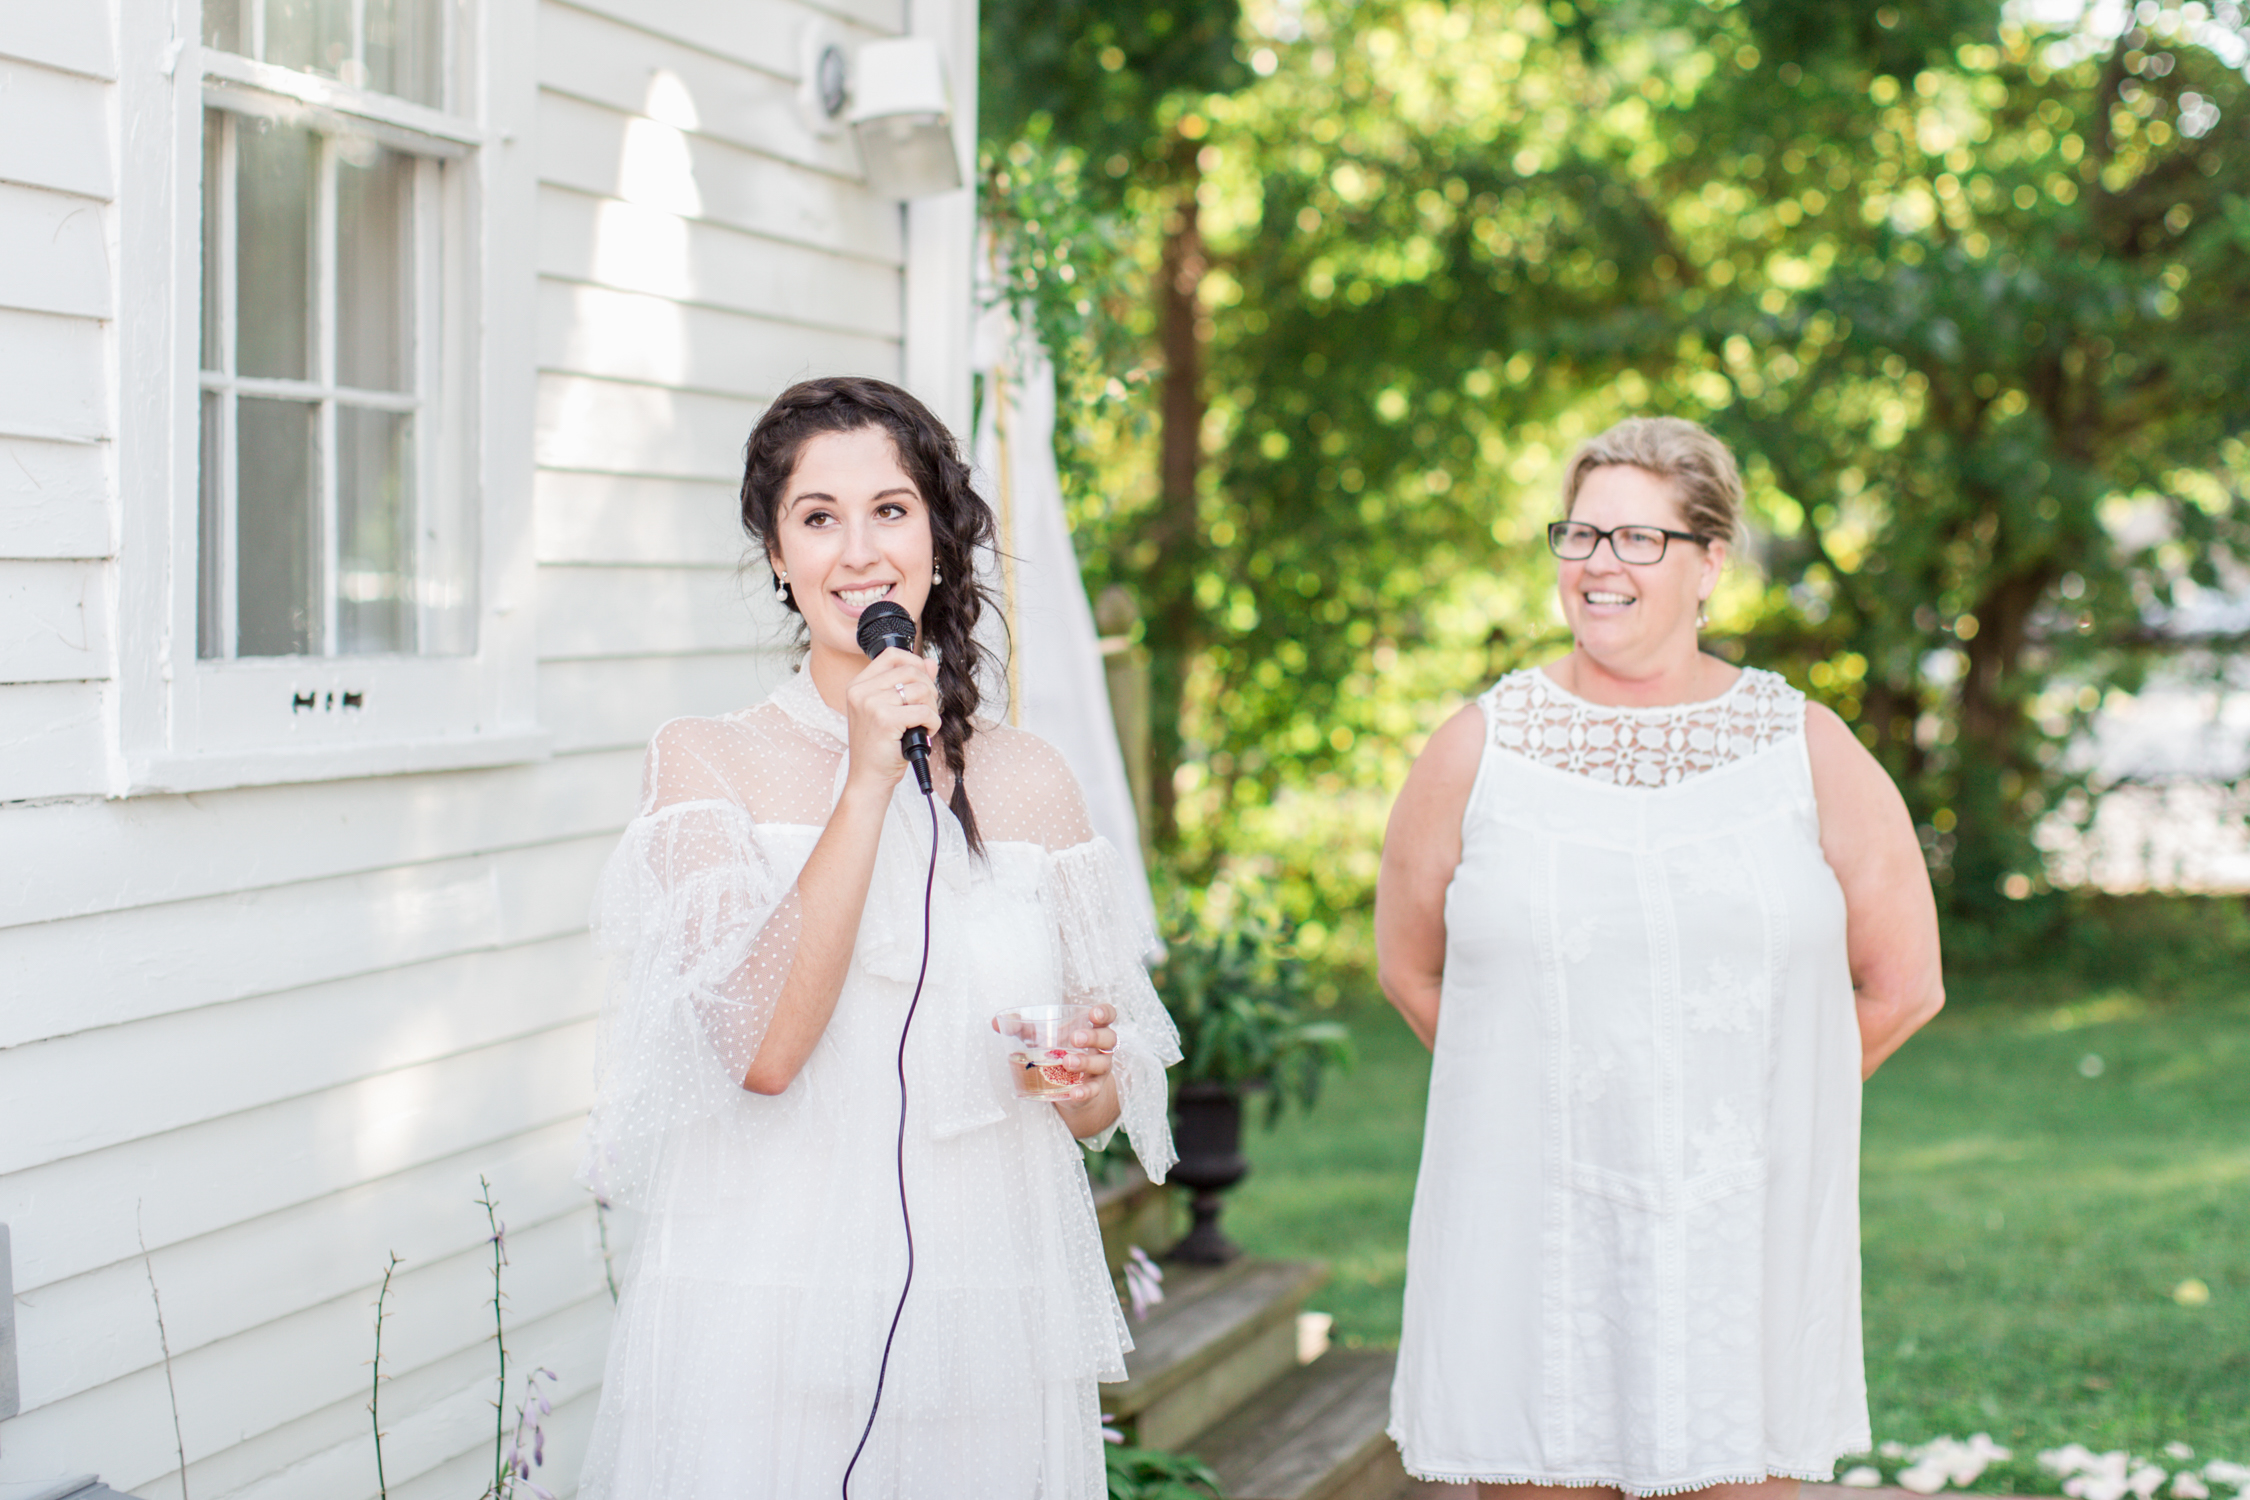 Madalyn Manzeck of Madalyn Joy Designs and Vicki Kunz of La Tulipe welcoming the guests to their garden party.